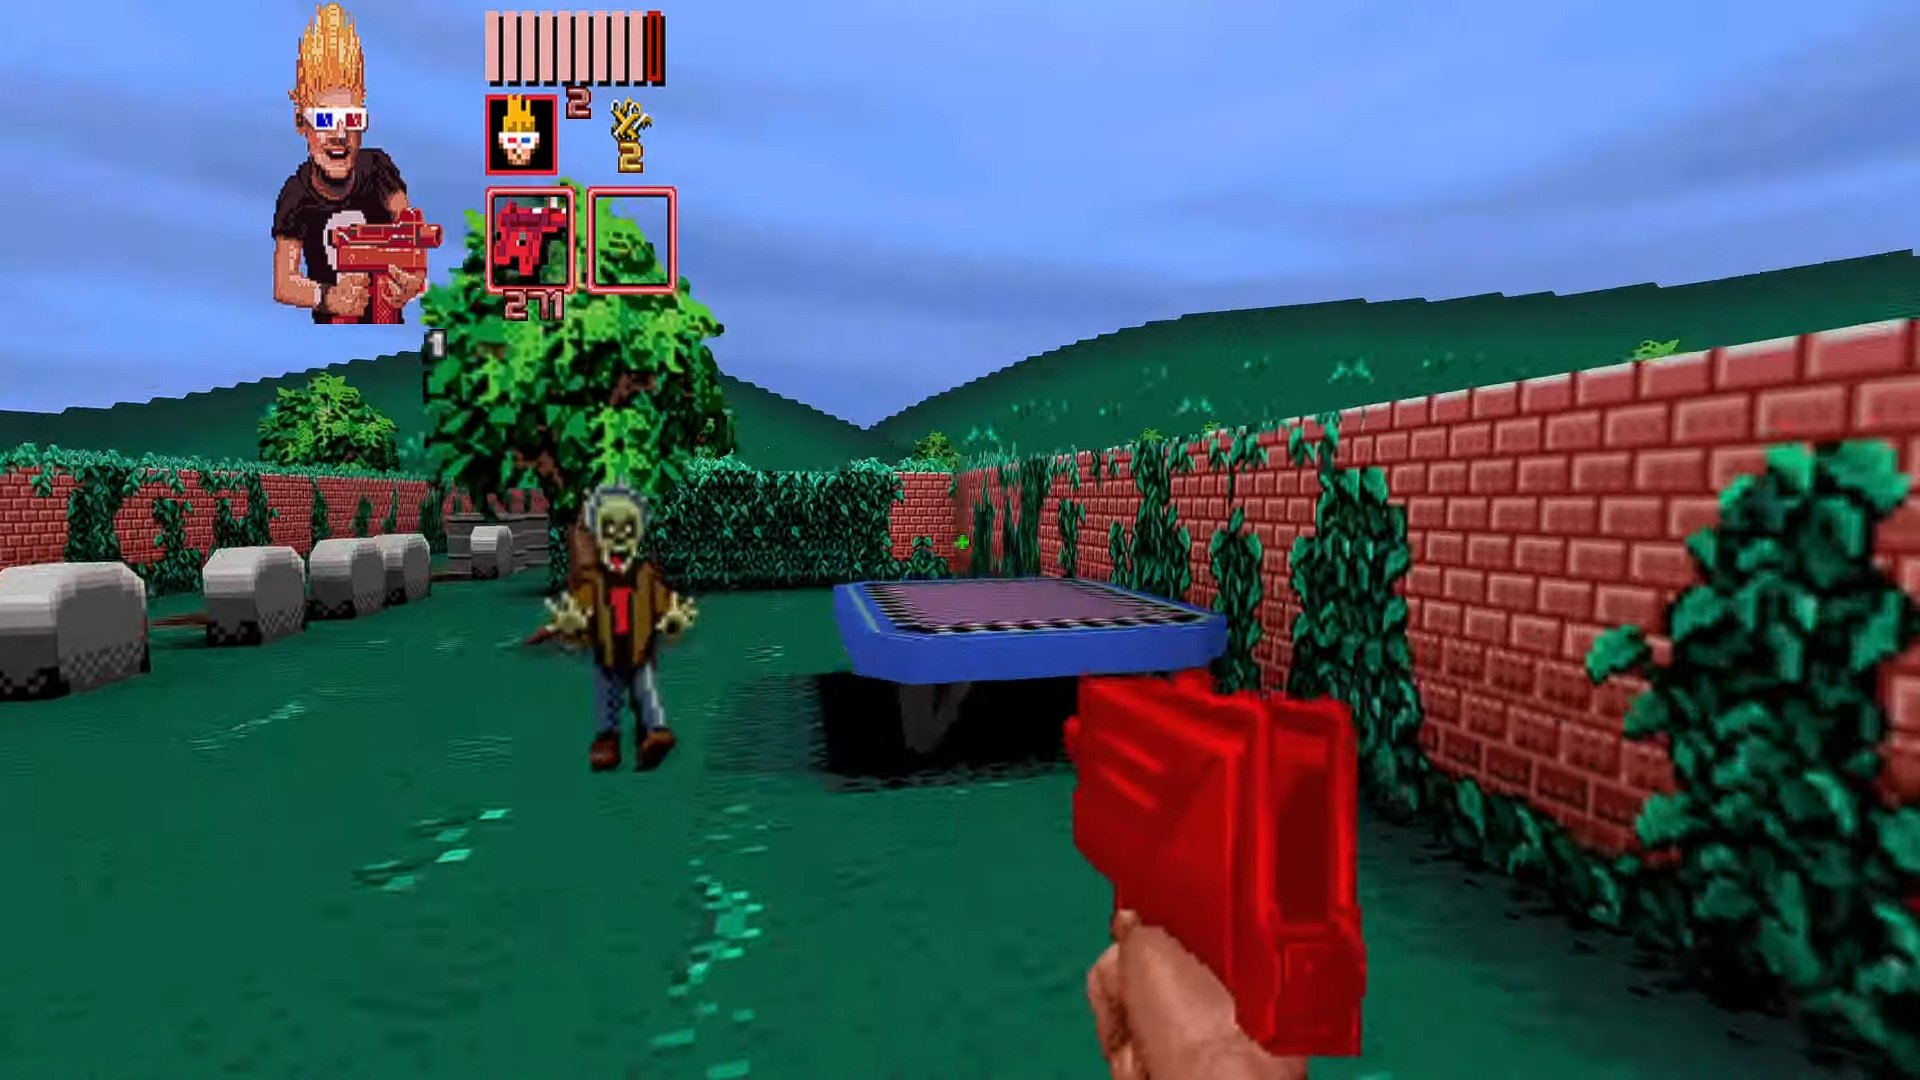 Zombies Ate My Neighbors and Doom are a match made in heaven screenshot